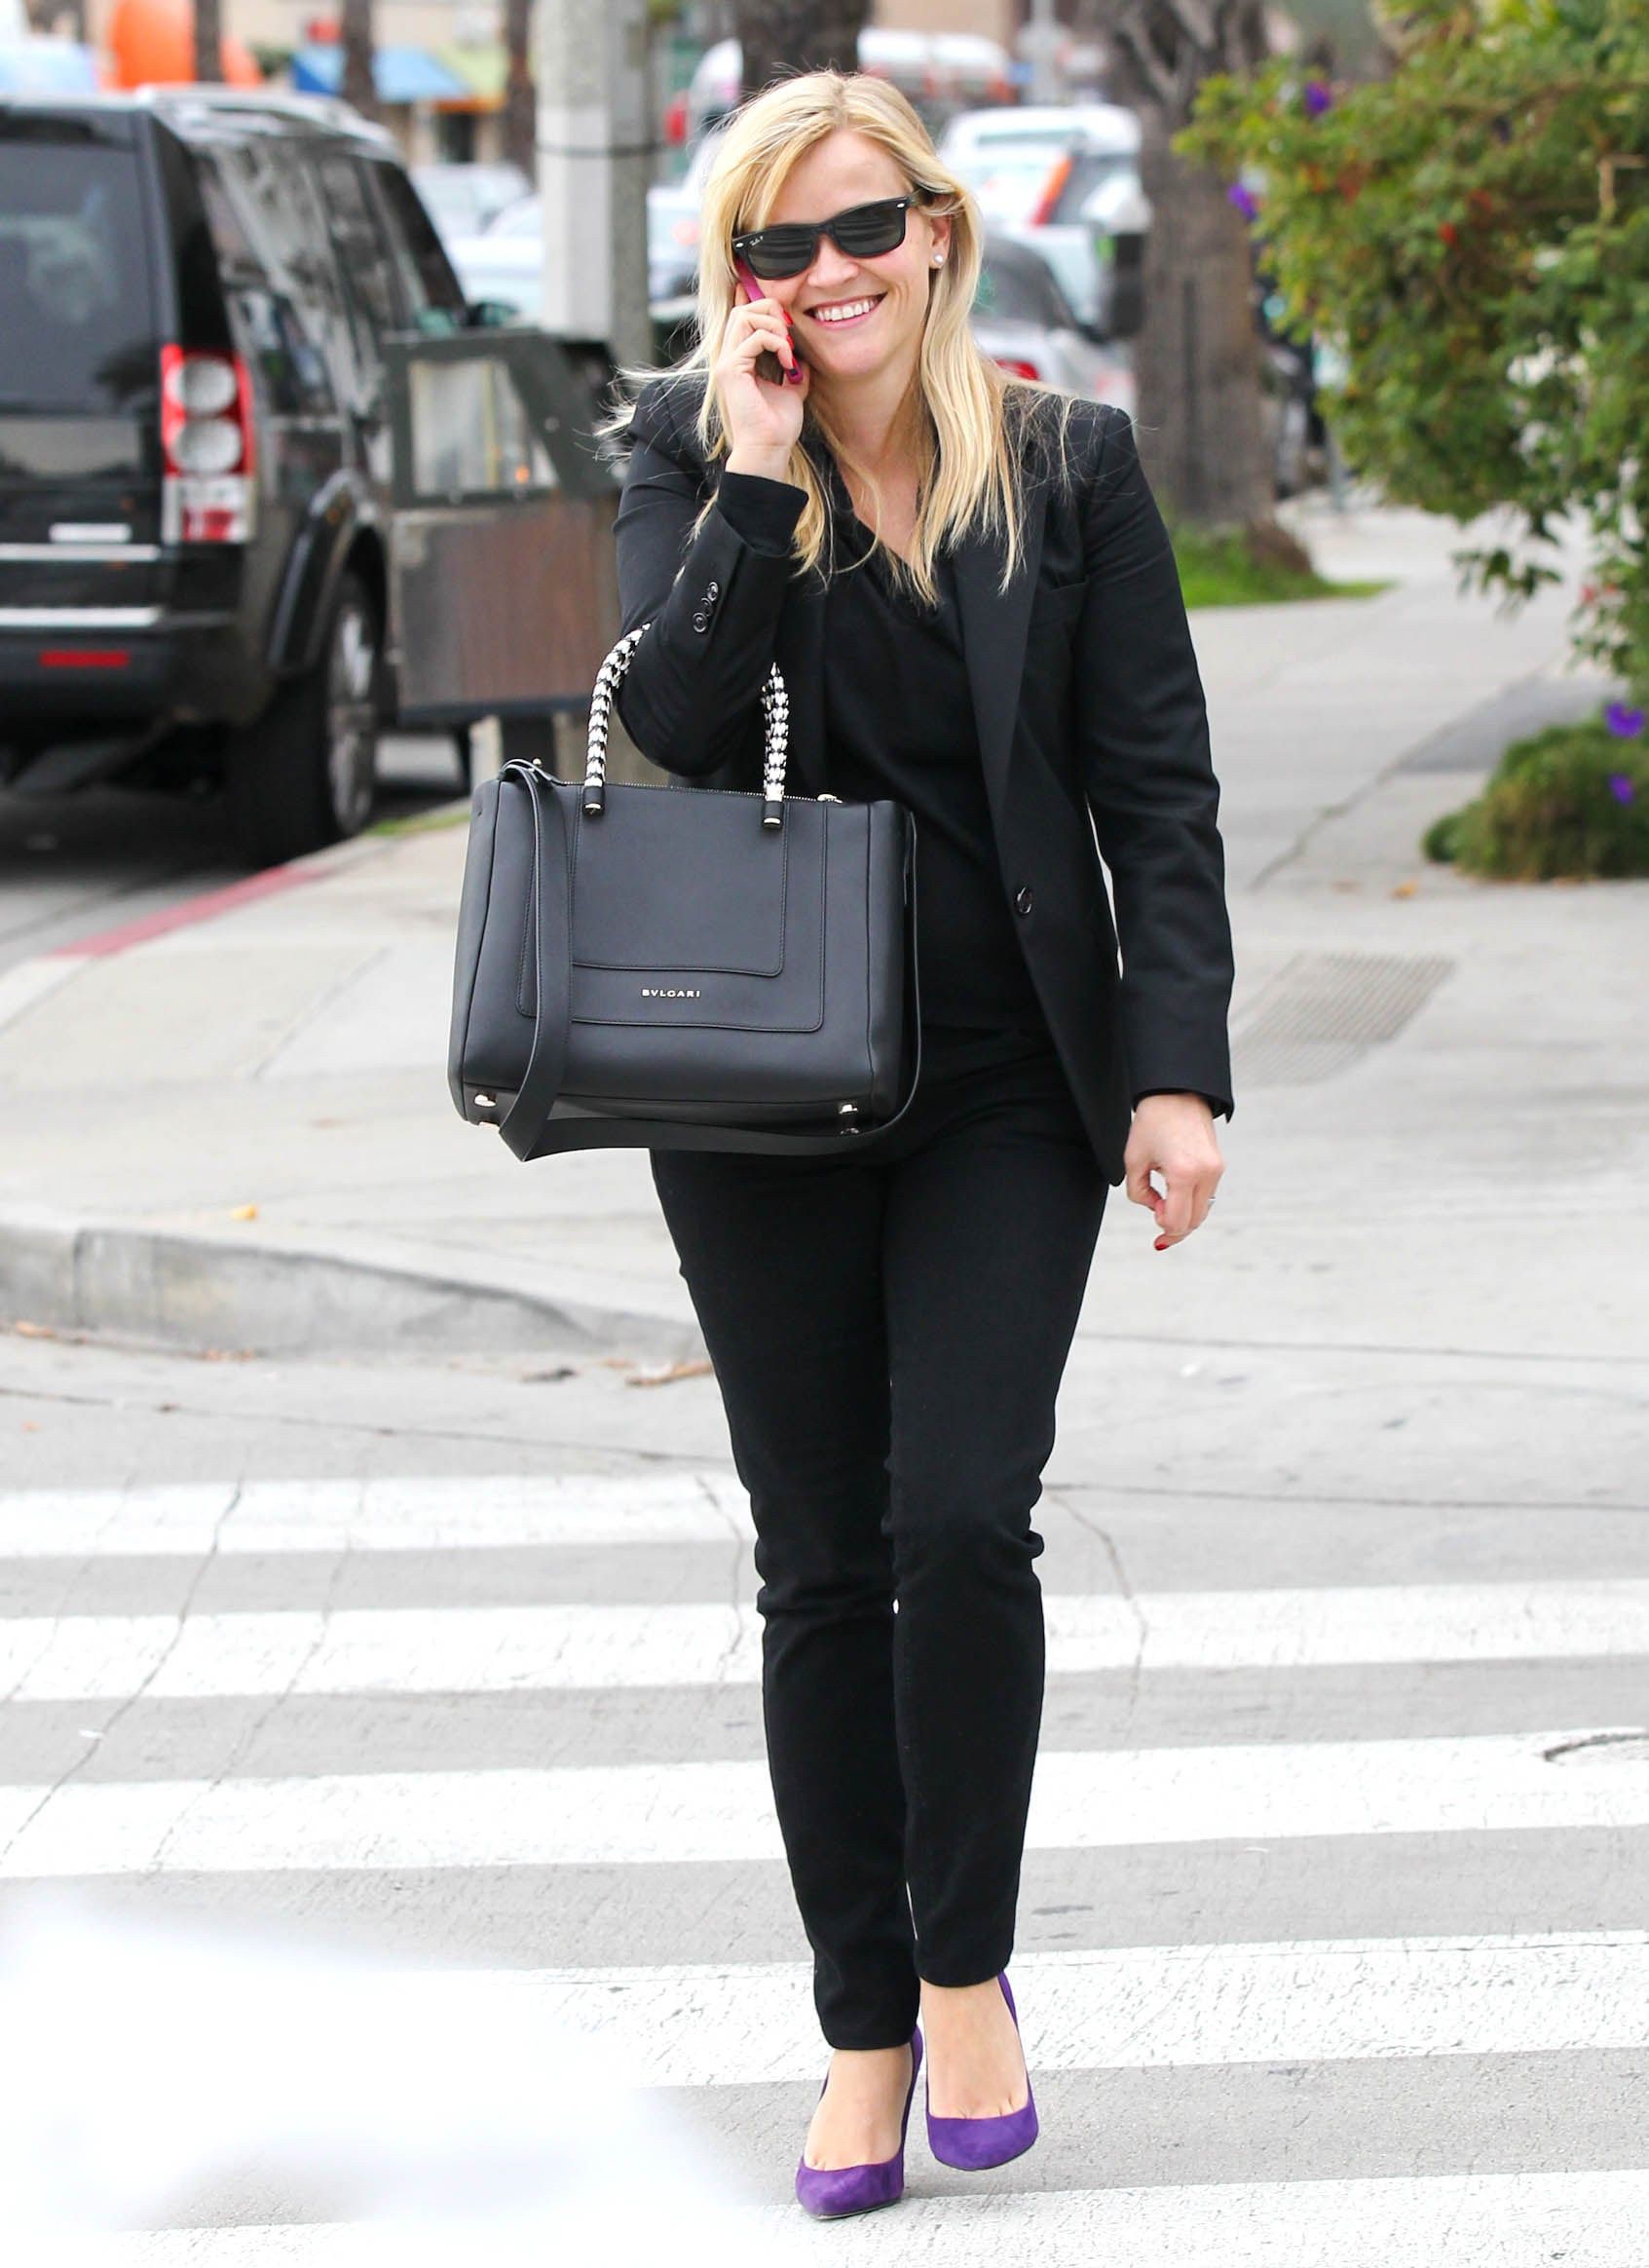 Reese Witherspoon had a laugh while chatting on her phone during a shopping trip in LA.